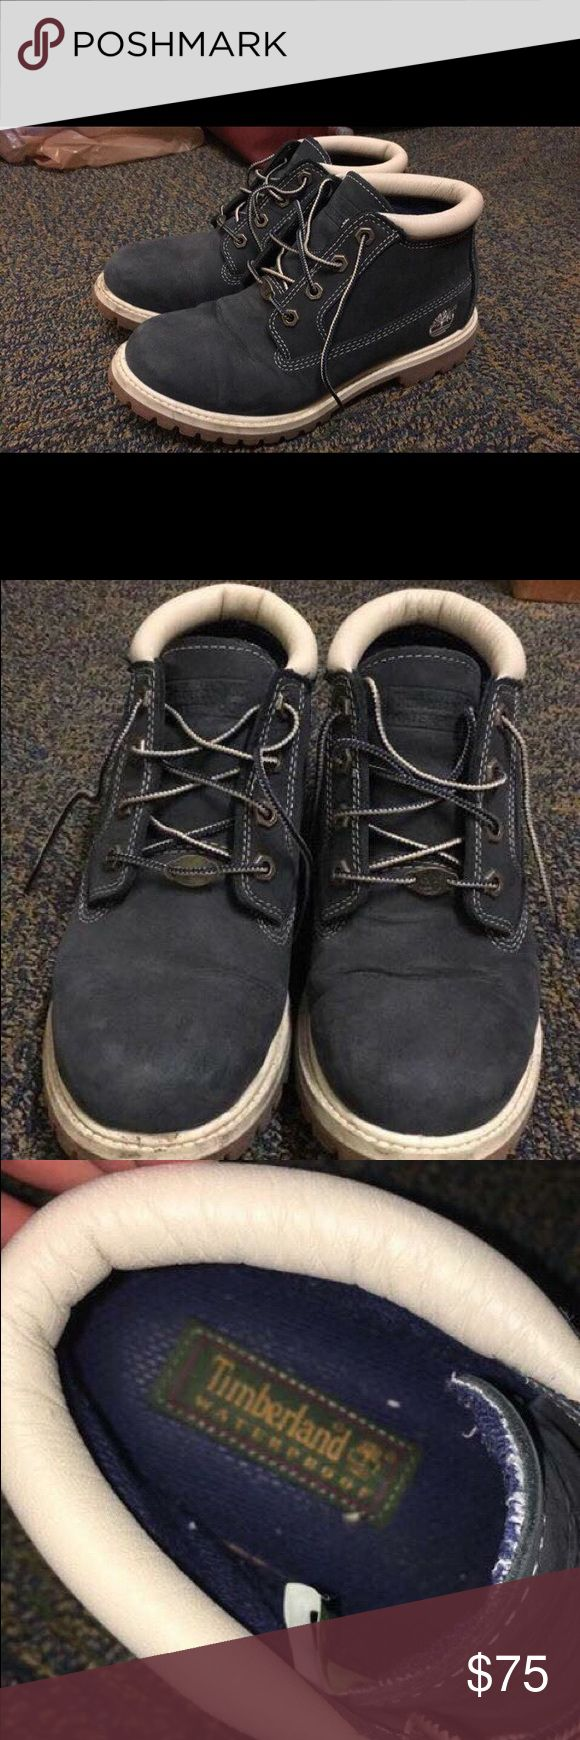 Navy blue timberland boots Size: 7.5 Style: short Color: navy  Condition: very good  Purchased for $150, barley worn  ***(Willing to negotiate price)*** Shoes Ankle Boots & Booties